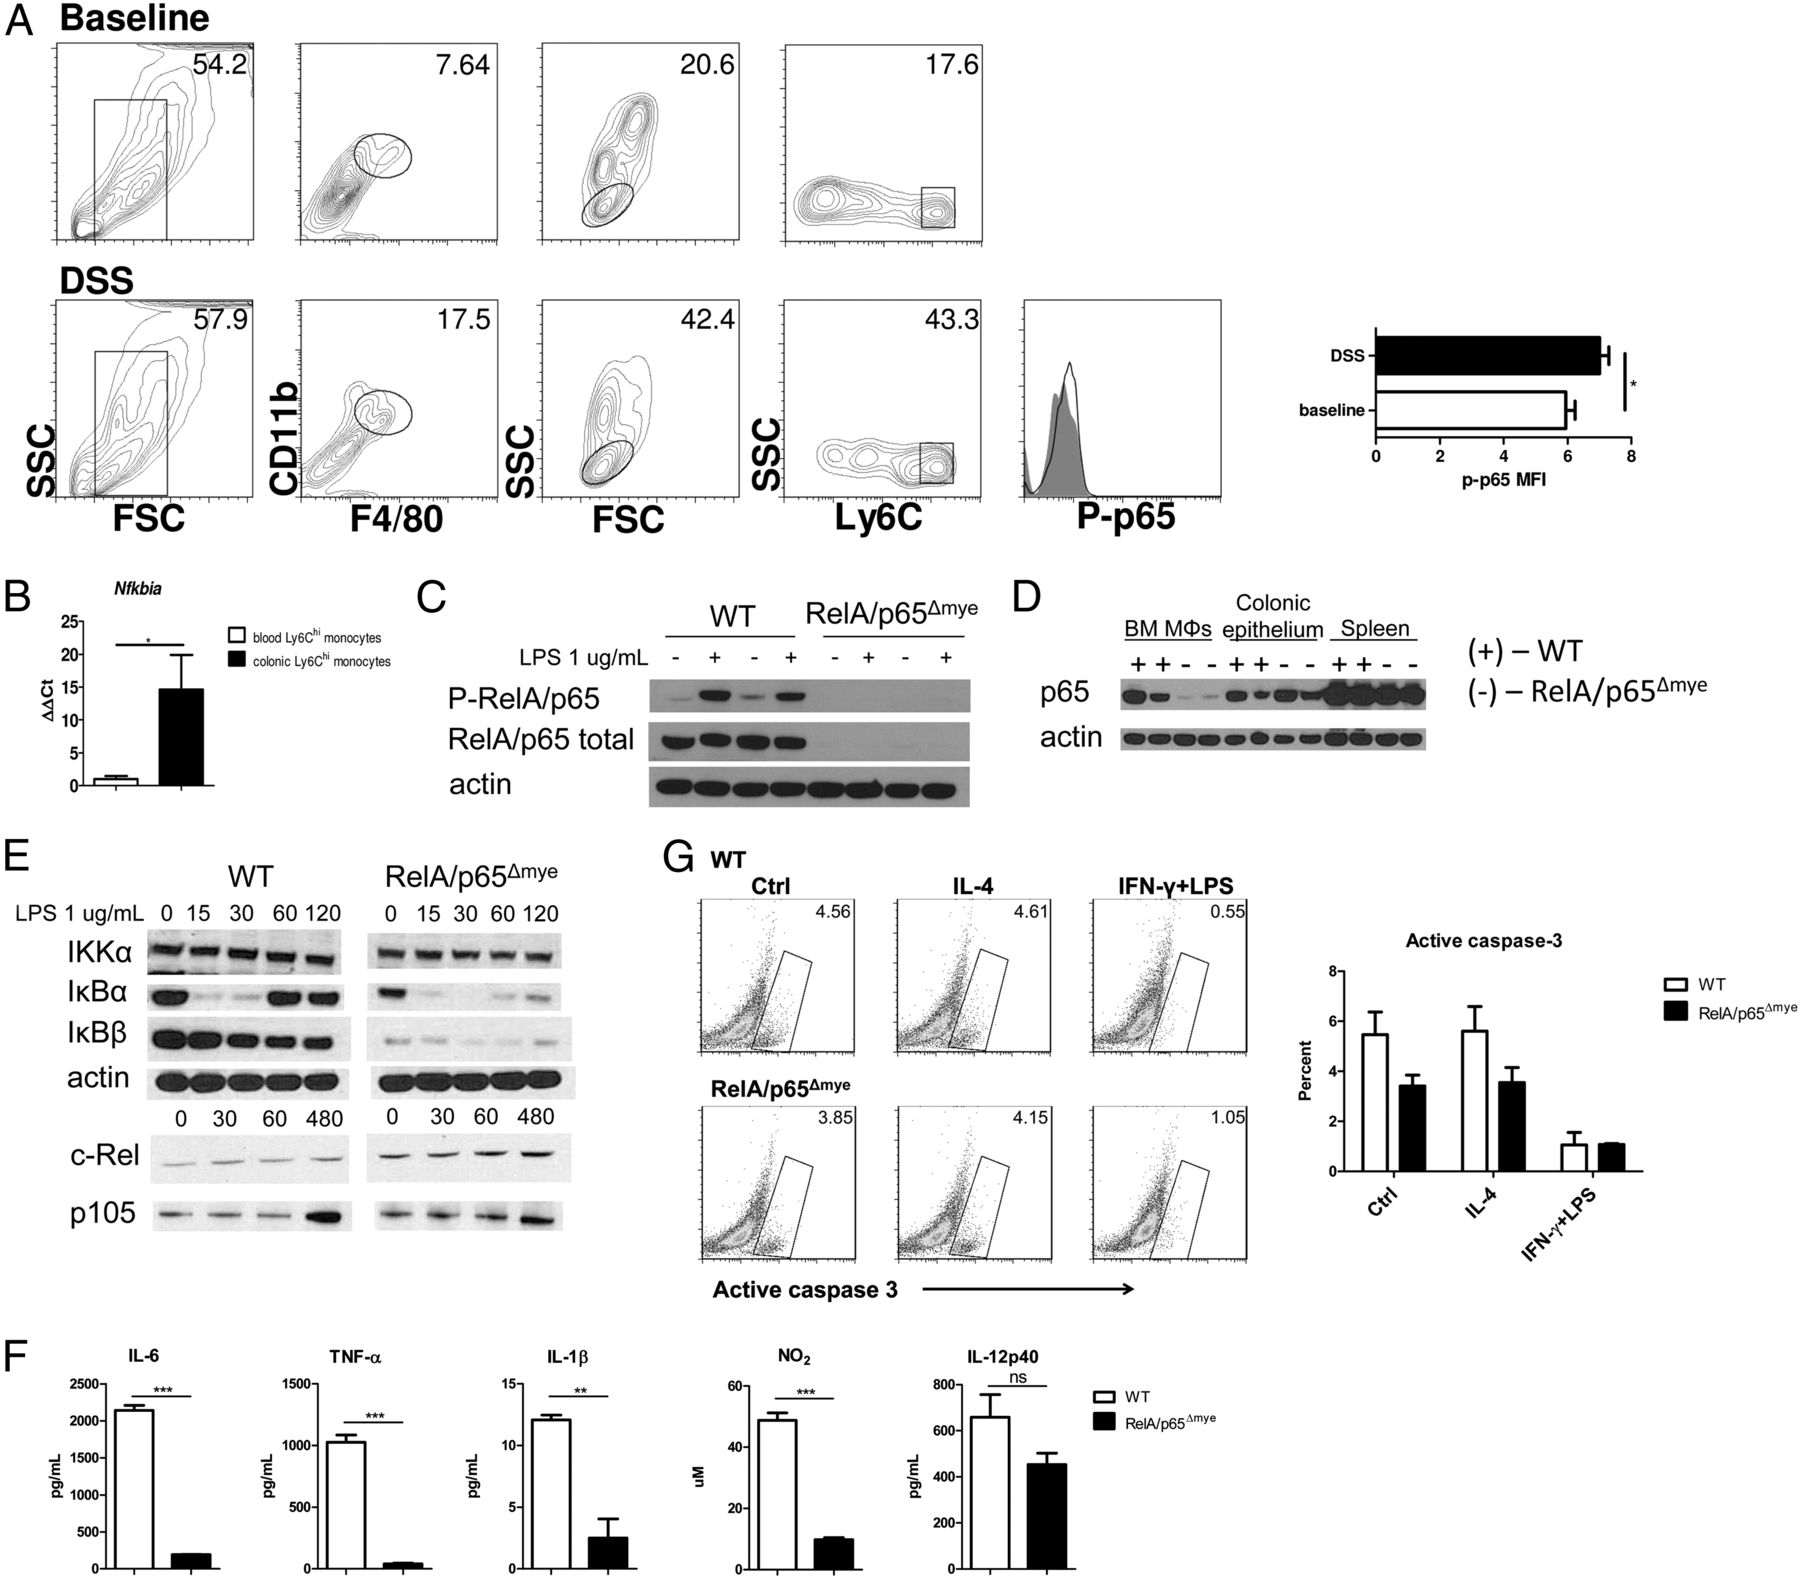 Intestinal CCL11 and Eosinophilic Inflammation Is Regulated by